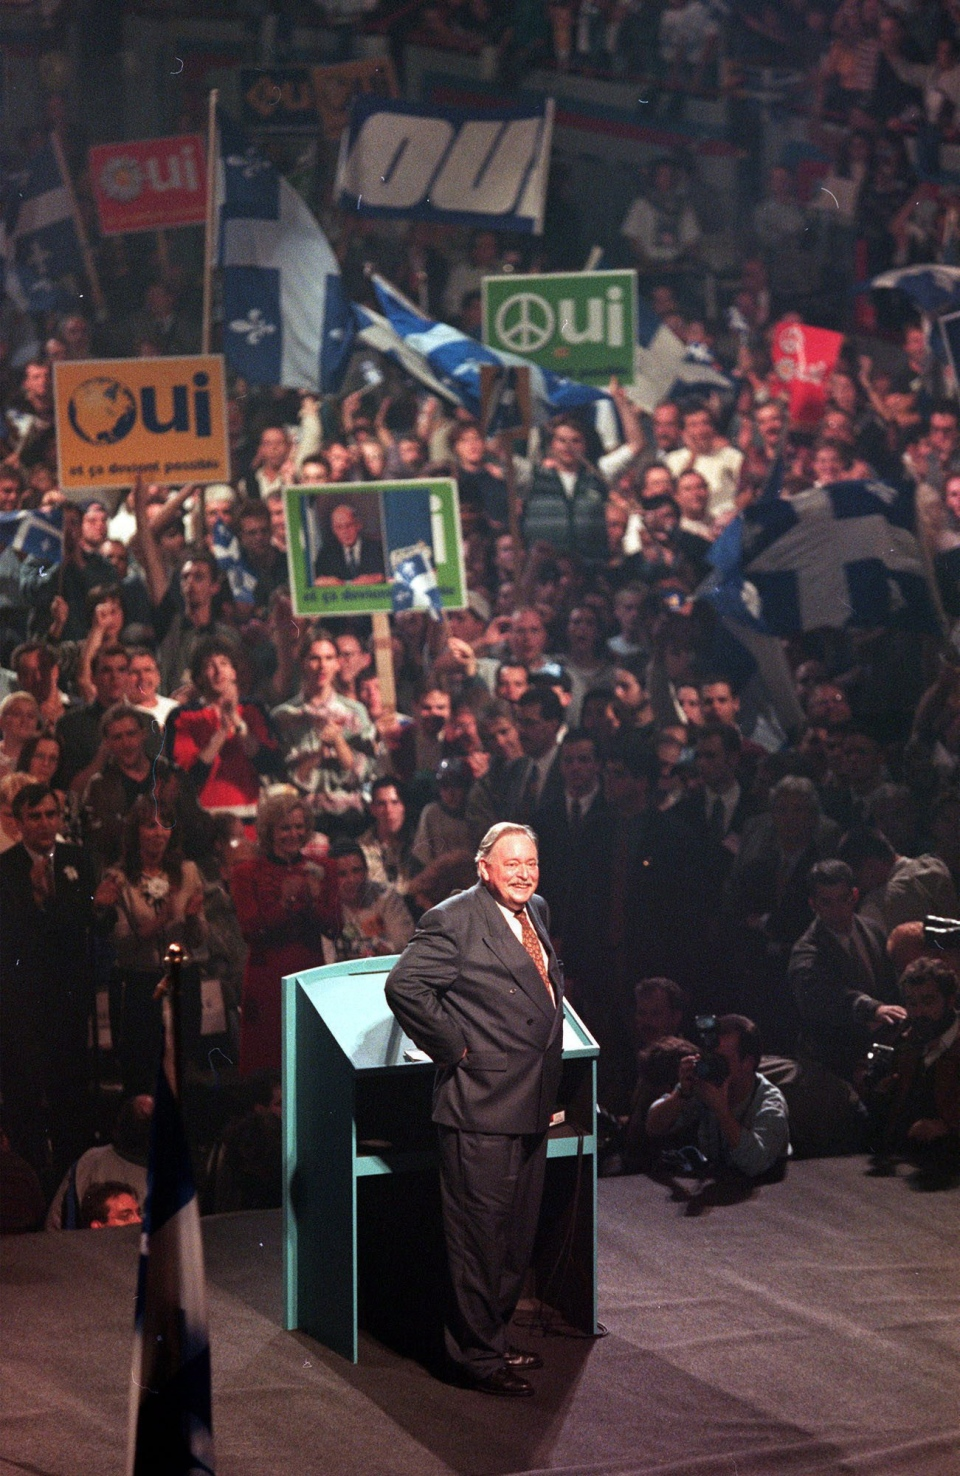 Then-Quebec Premier Jacques Parizeau acknowledges the applause from the crowd during a Yes rally in Montreal on Oct. 25, 1995. (Paul Chiasson / THE CANADIAN PRESS)